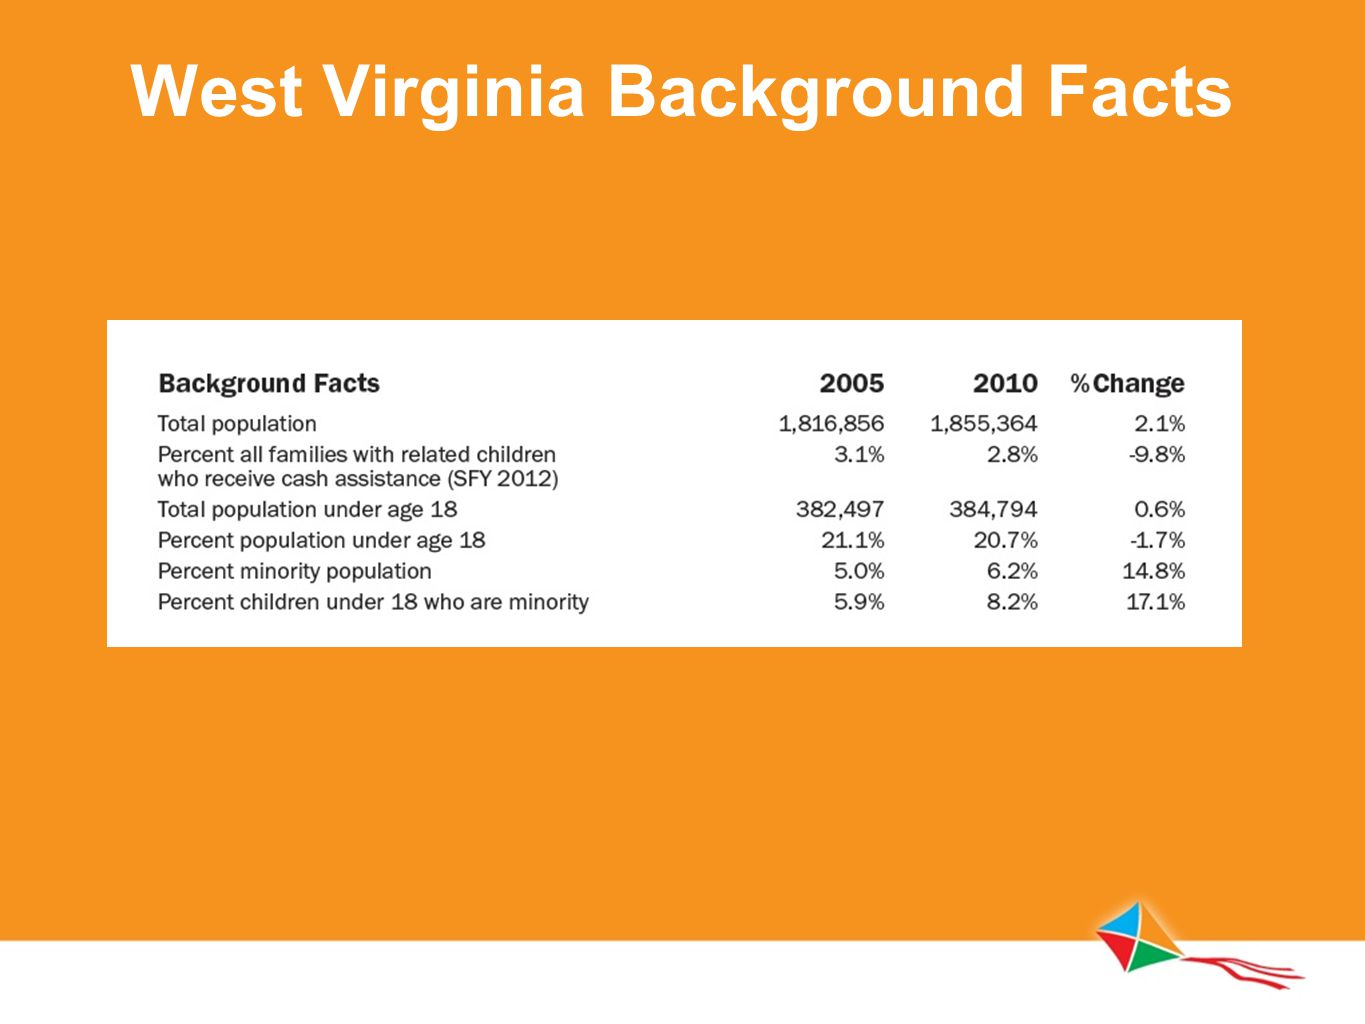 West Virginia Background Facts